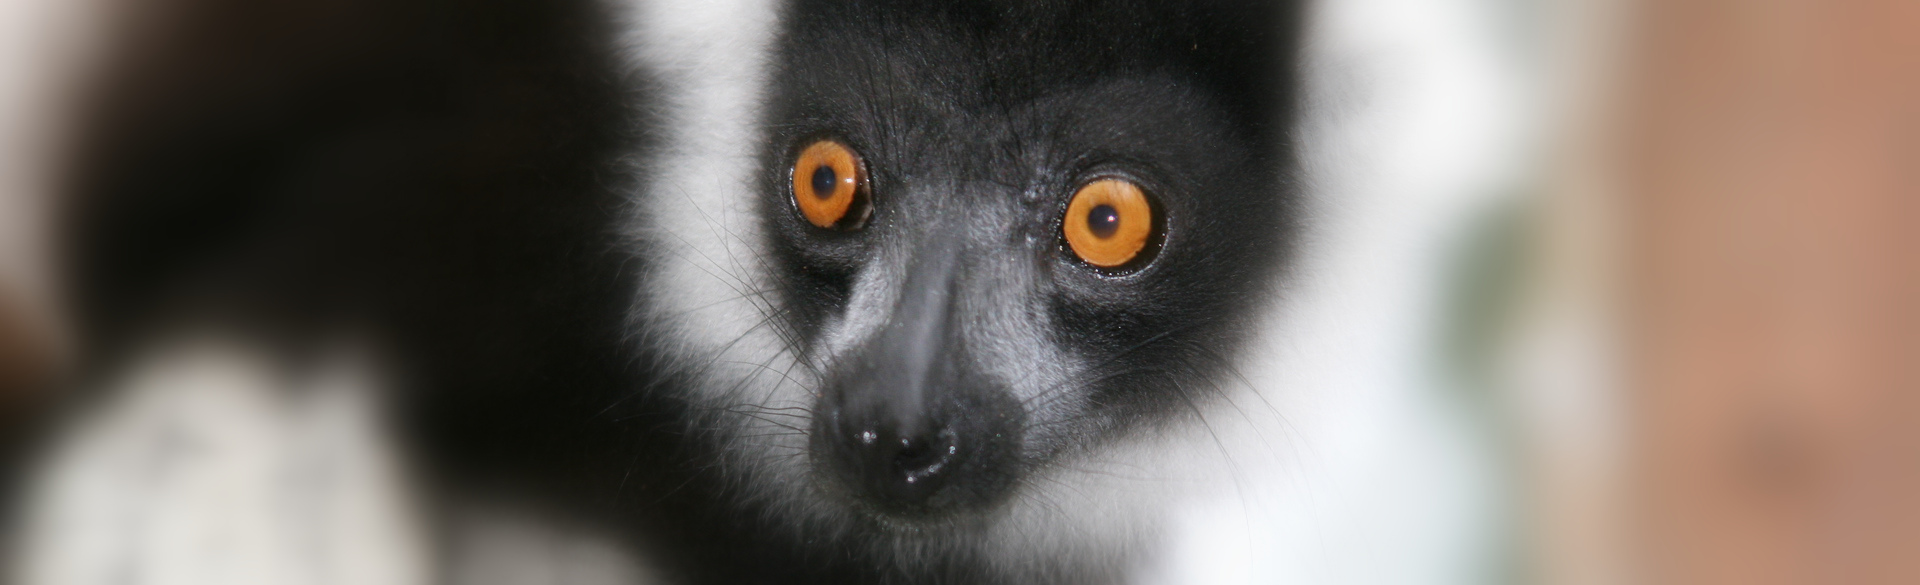 Lemur portrait by Trish Berry